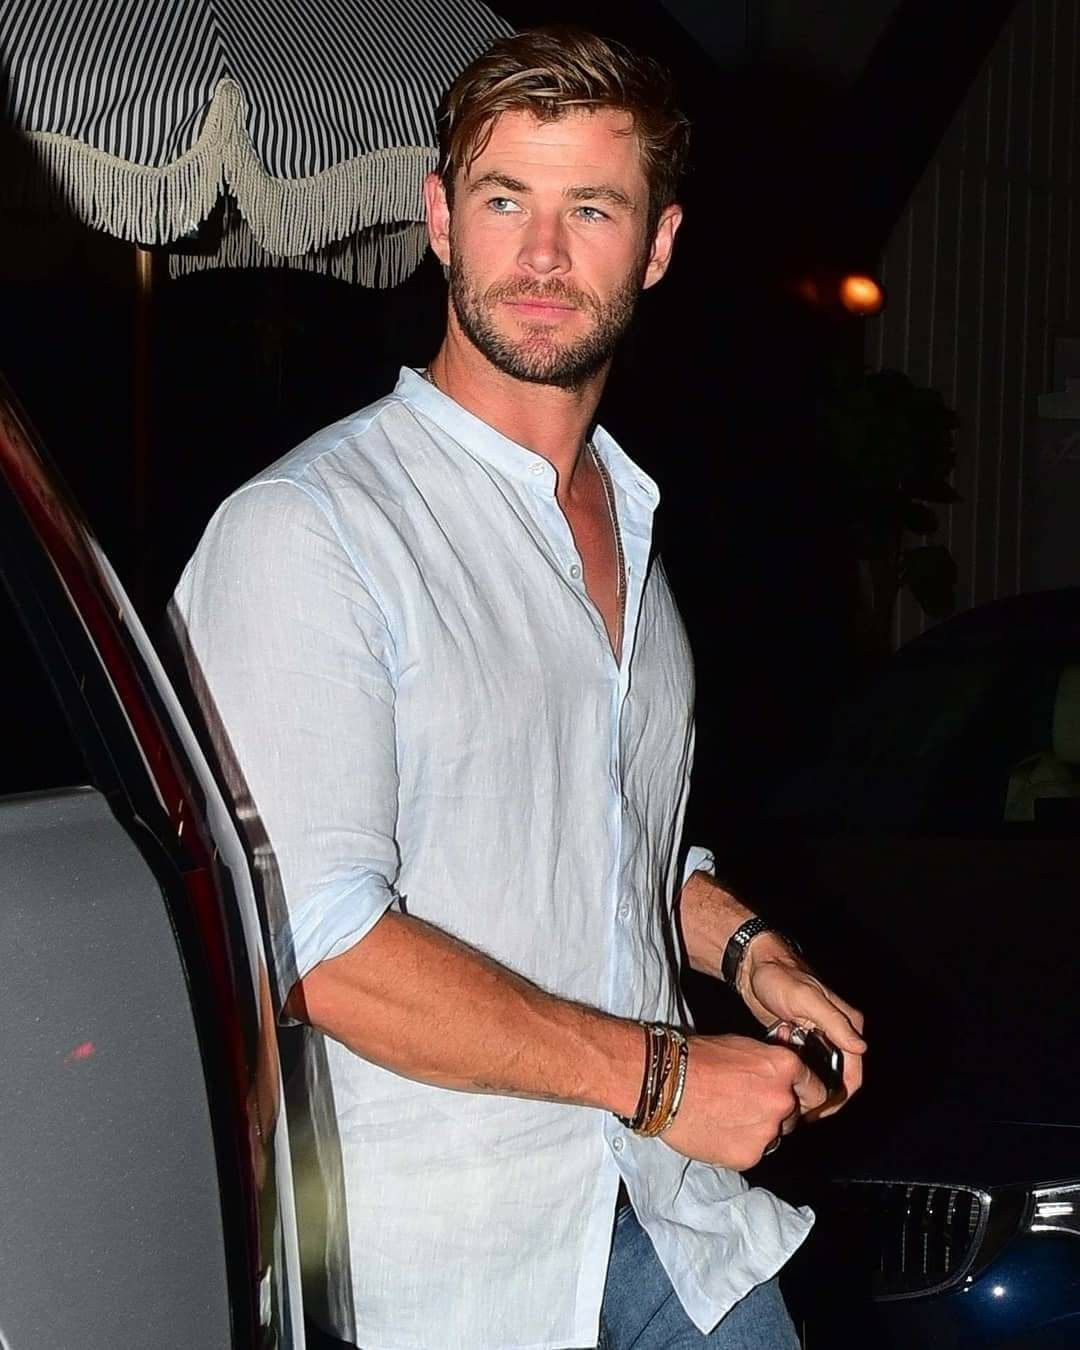 Pin by Andrea on Chris hemsworth in 2020 | Chris hemsworth ...